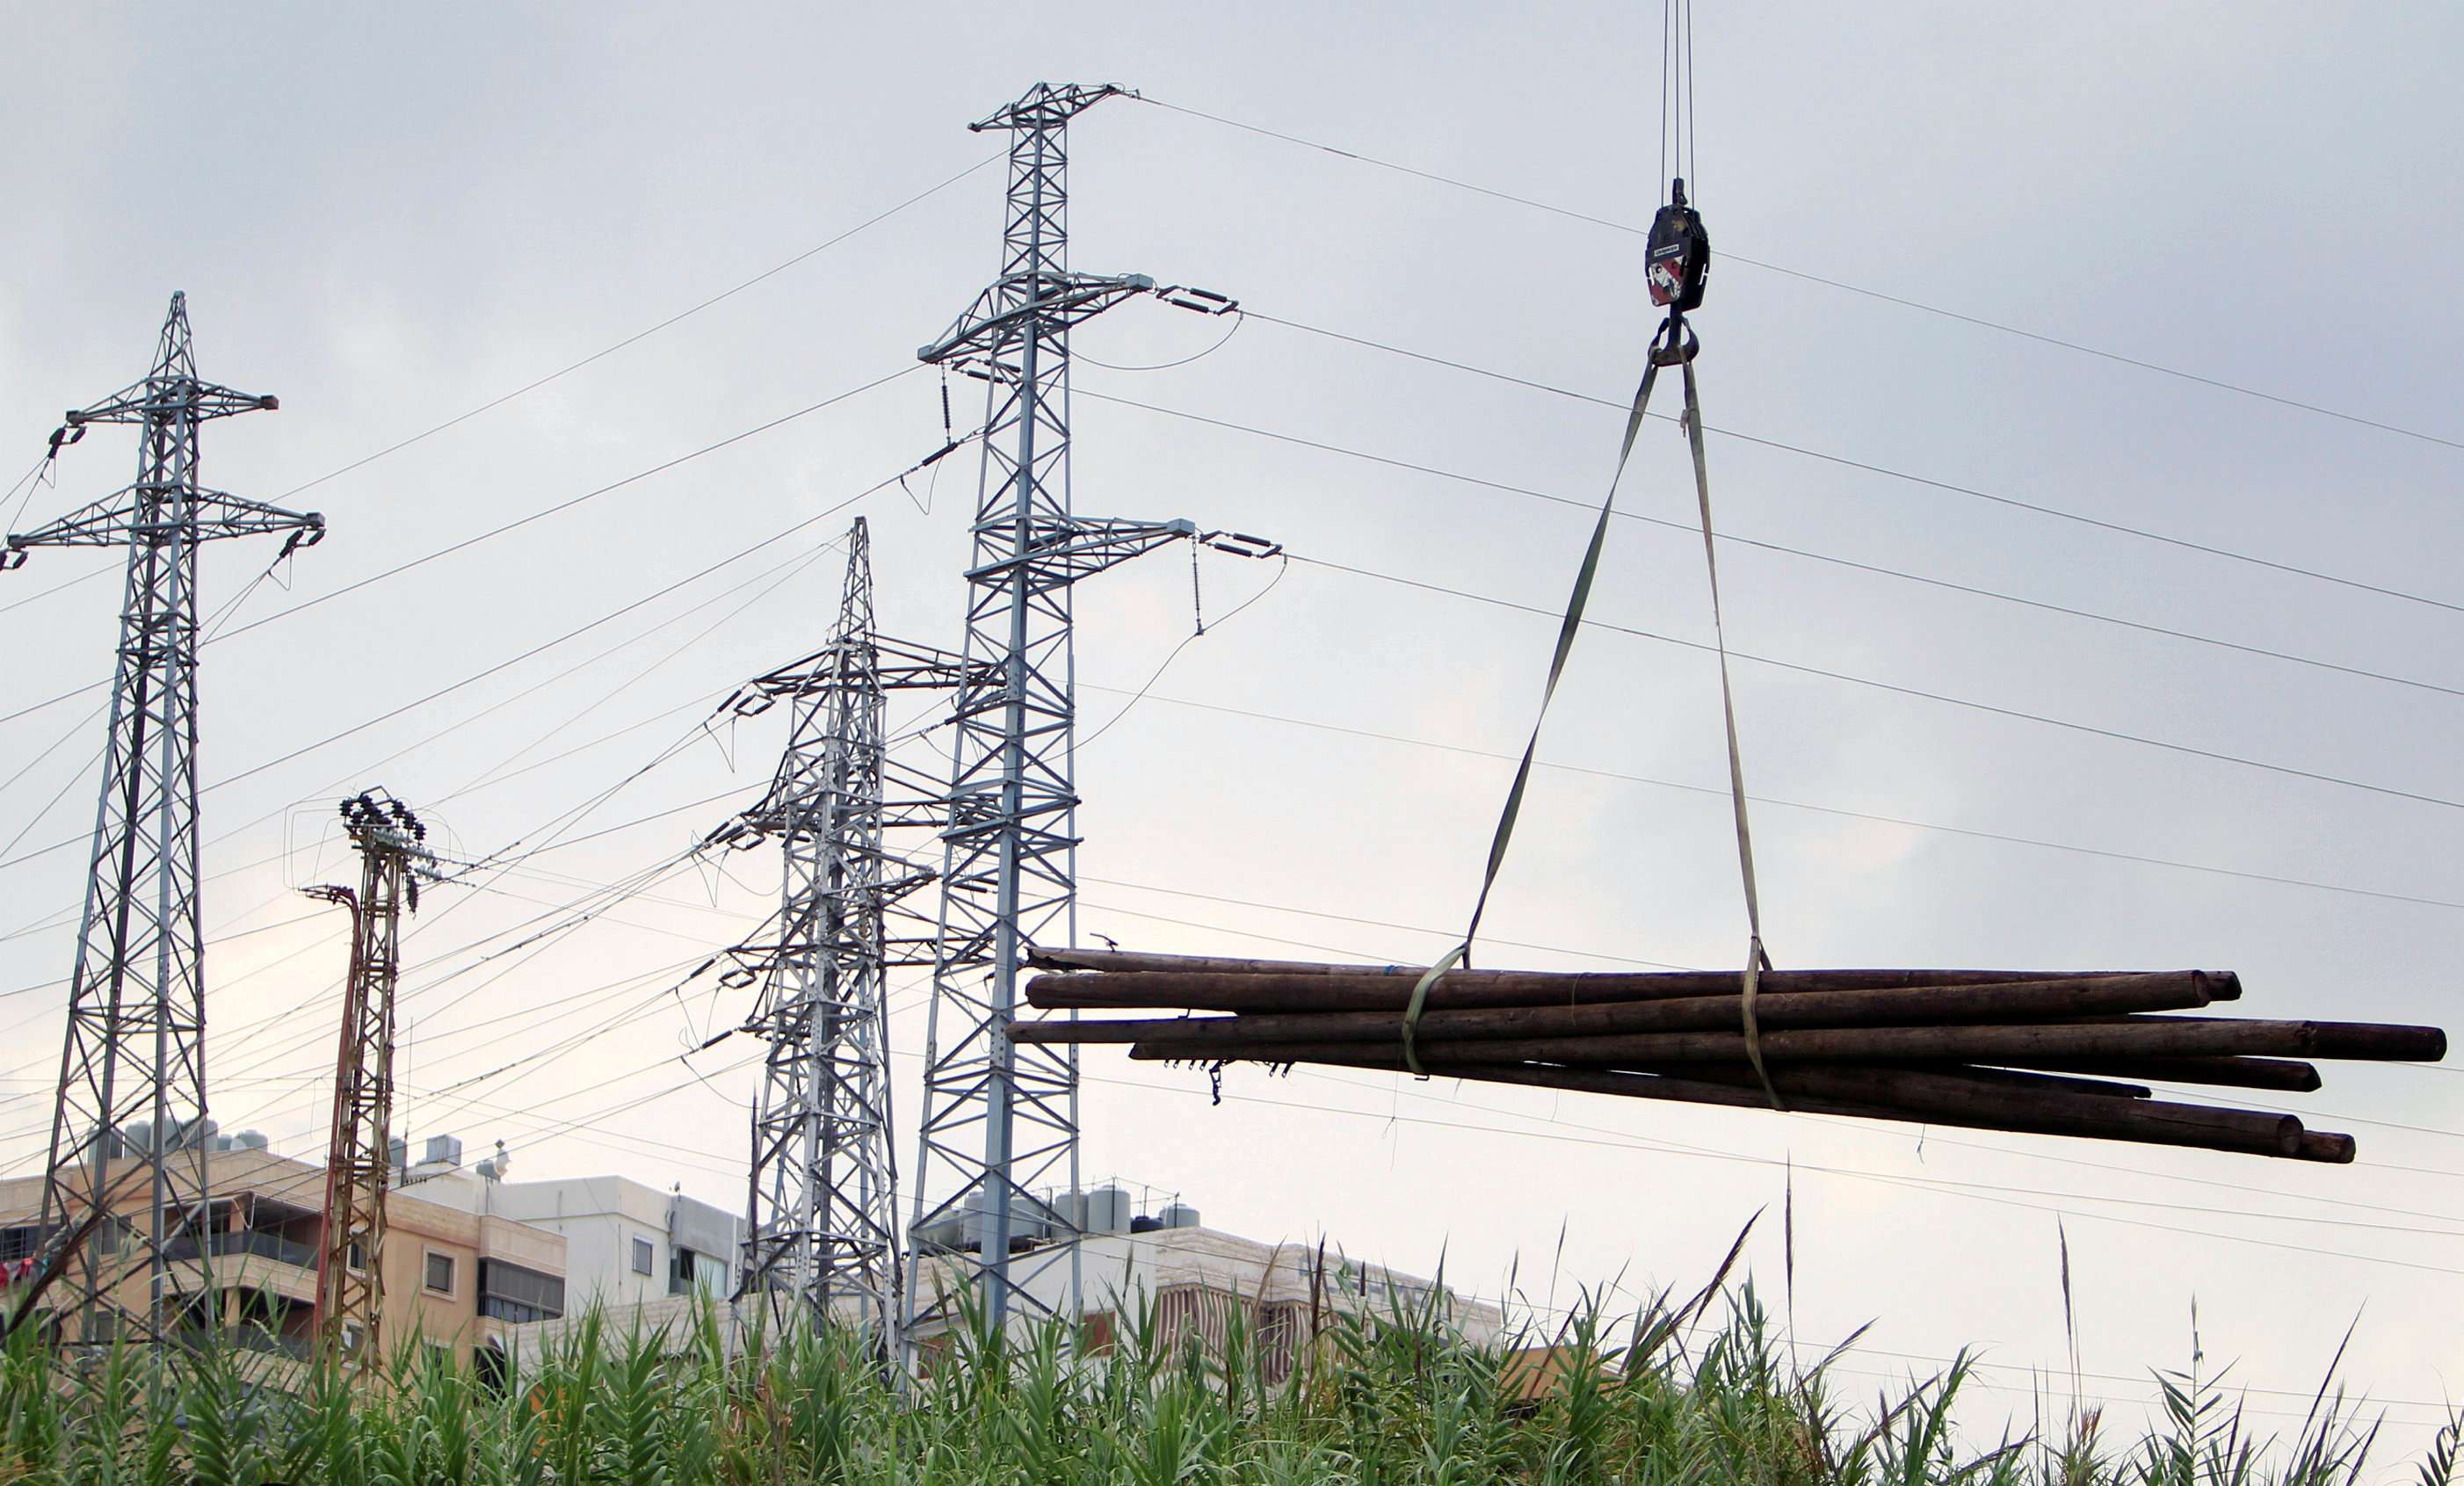 Electricity pylons are seen in Sidon in southern Lebanon. (Reuters)